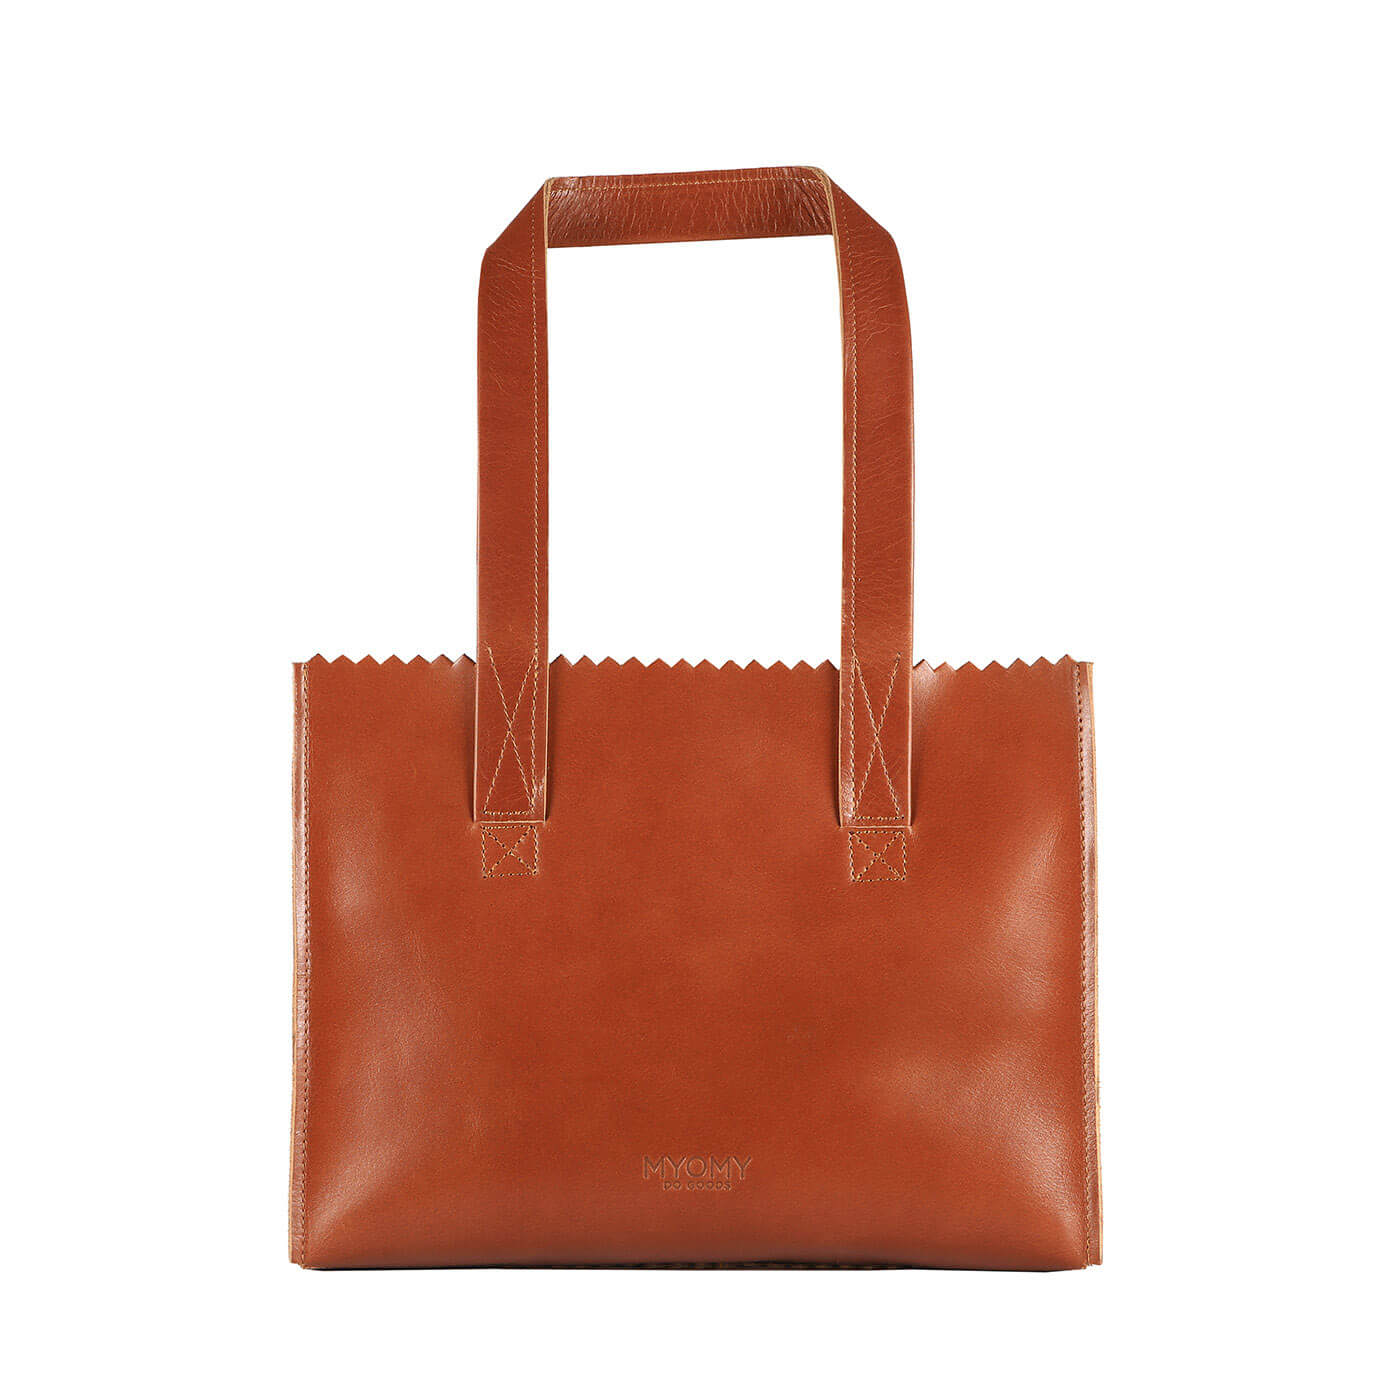 MY PAPER BAG Handbag - hunter waxy cognac